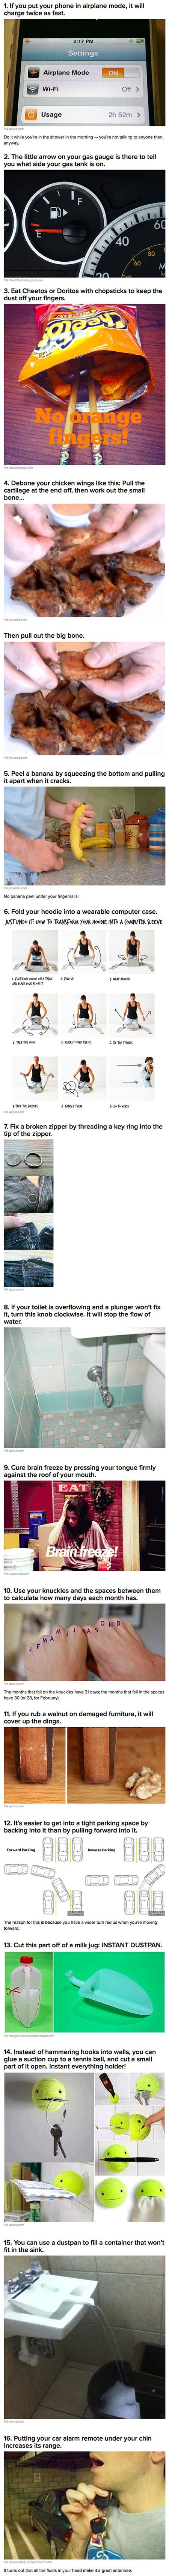 16 Extremely Simple Life Hacks That Will Make Life Easier - TechEBlog